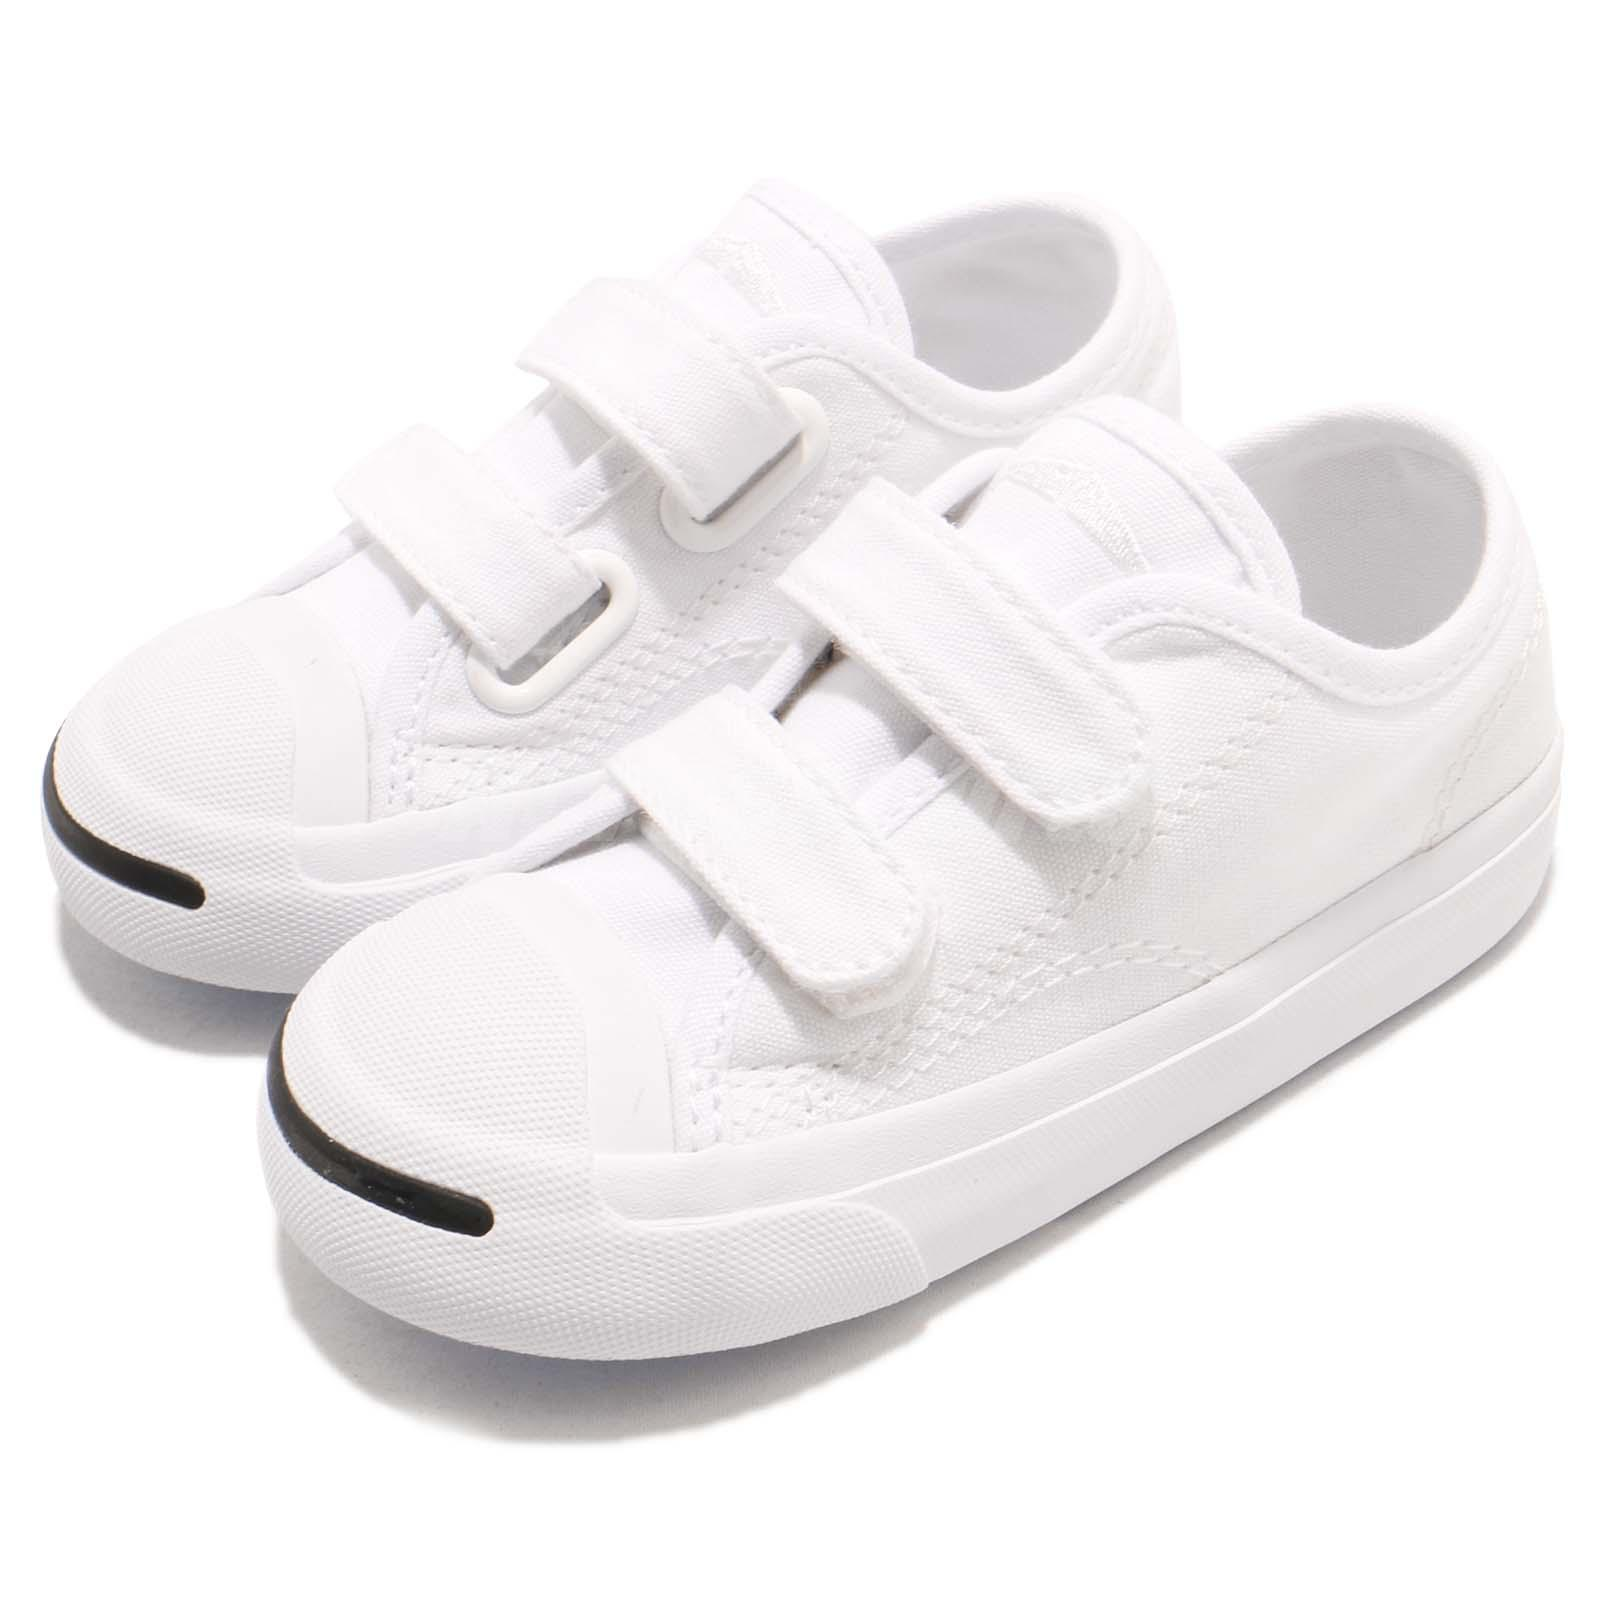 Converse Jack Purcell 2v Td White Canvas Toddler Infant Shoes